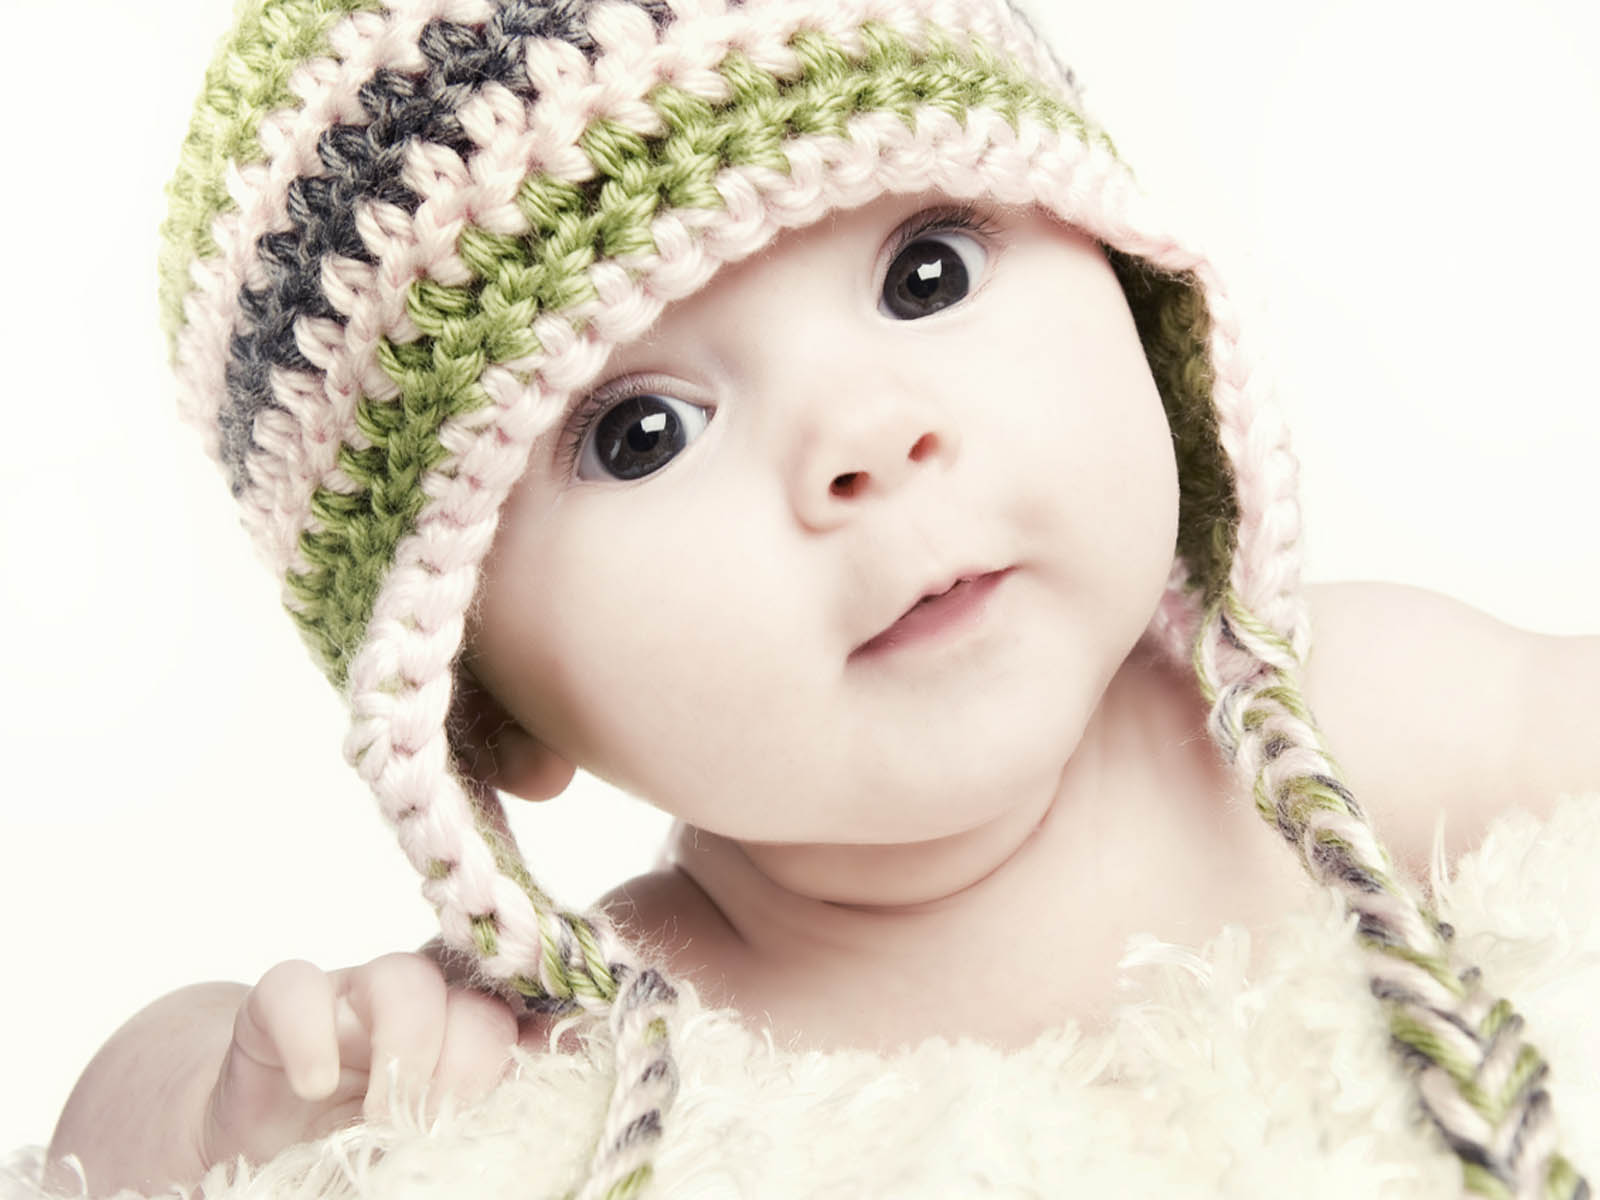 Baby Girl Wallpaper for Desktop - WallpaperSafari